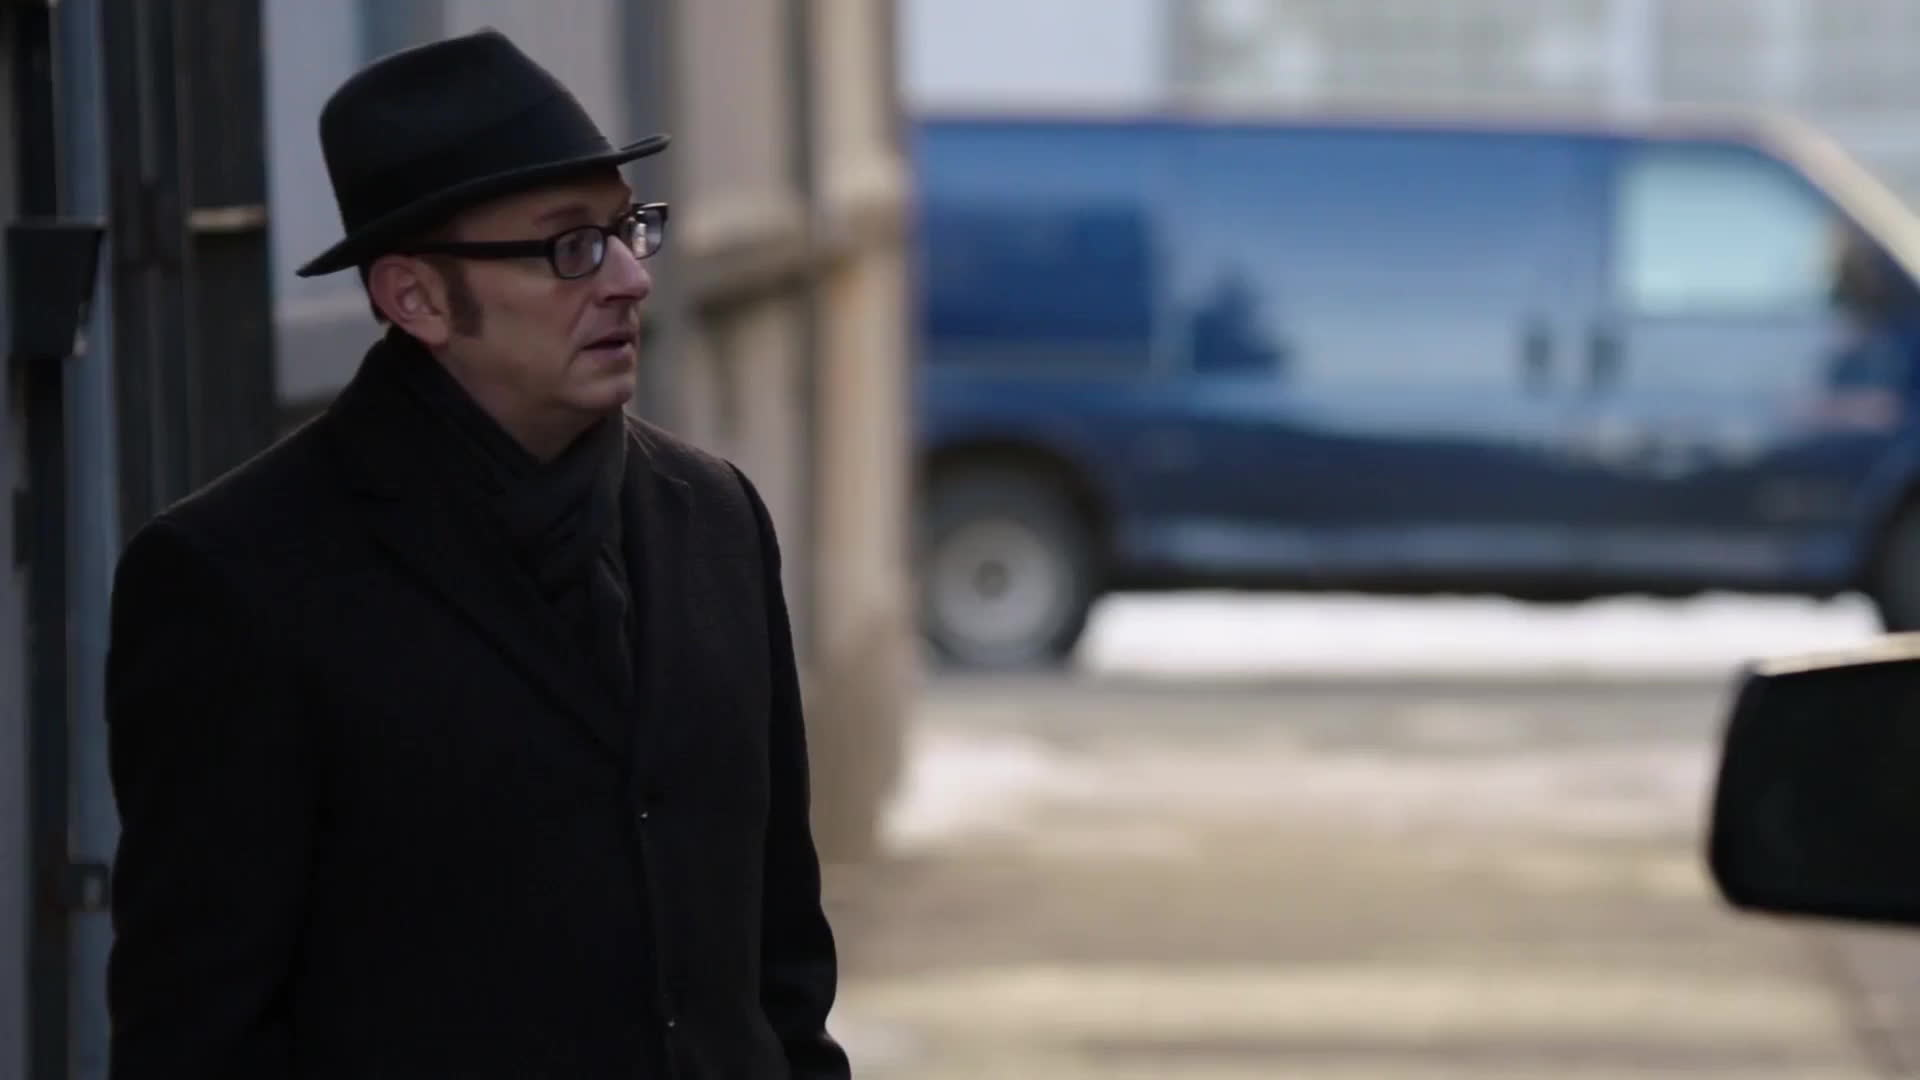 person of interest, personofinterest, shotgun, Person of Interest - Shotgun GIFs